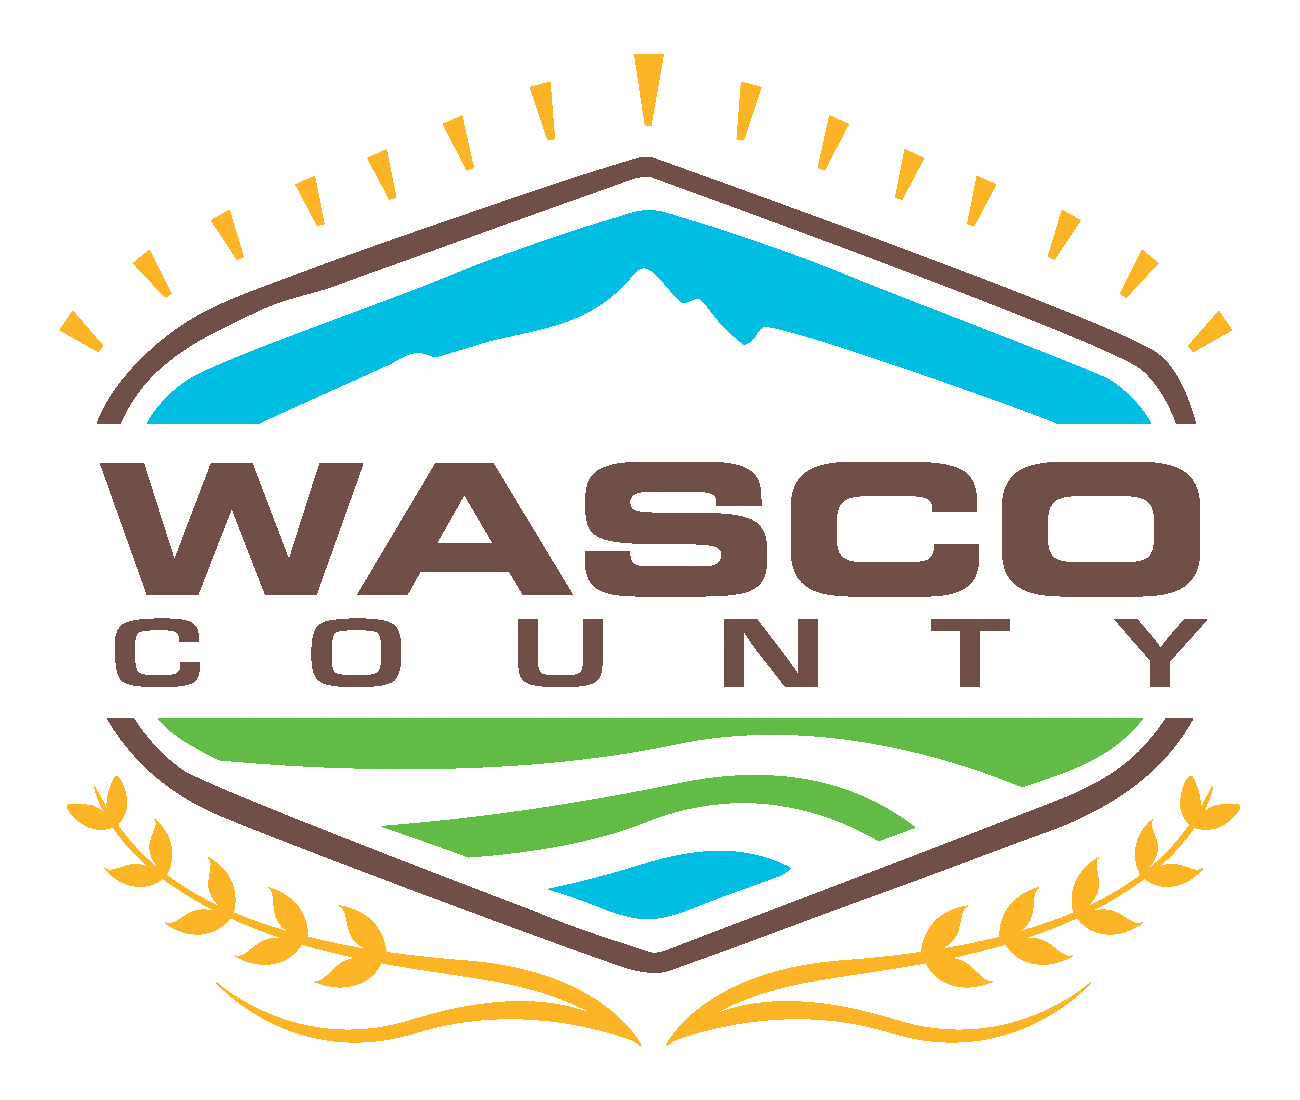 Wasco County 2040